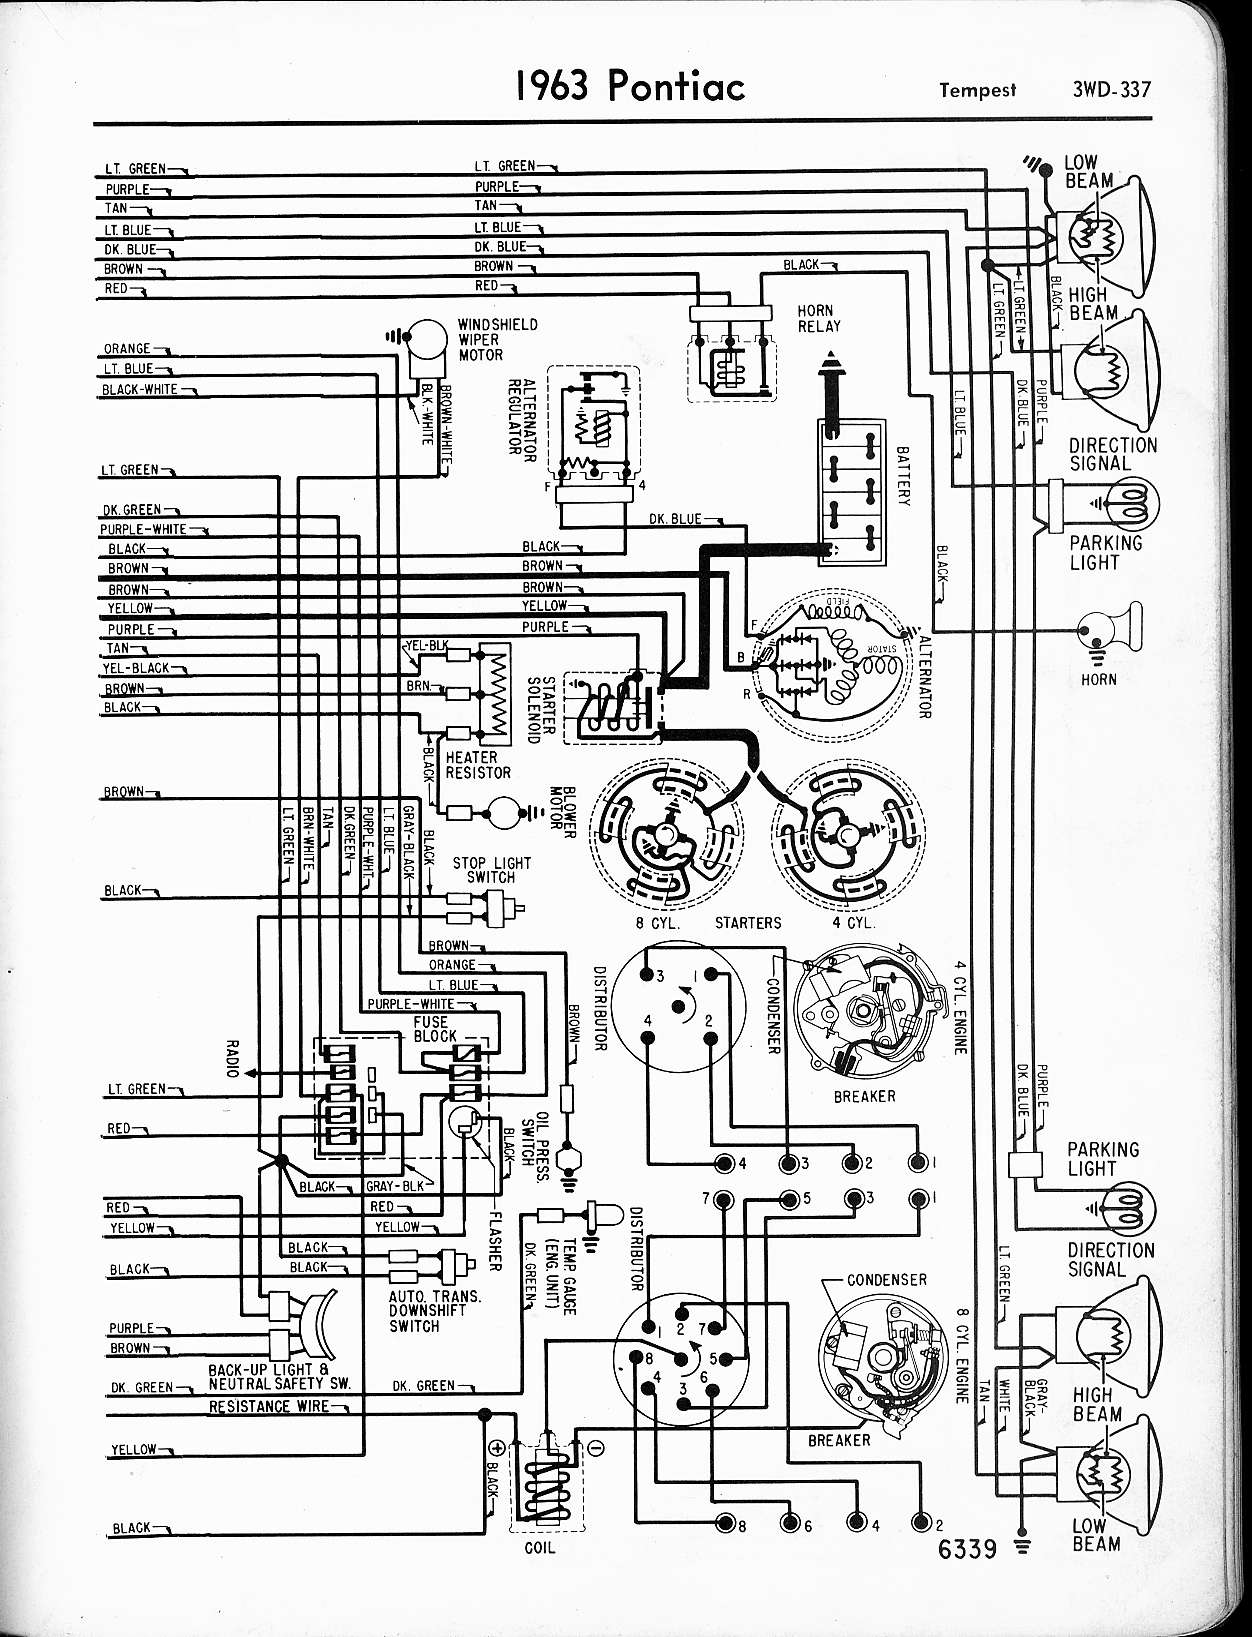 64 Impala Drawing At Free For Personal Use 73 Chevy C10 Fuse Box 1252x1637 1970 Gto